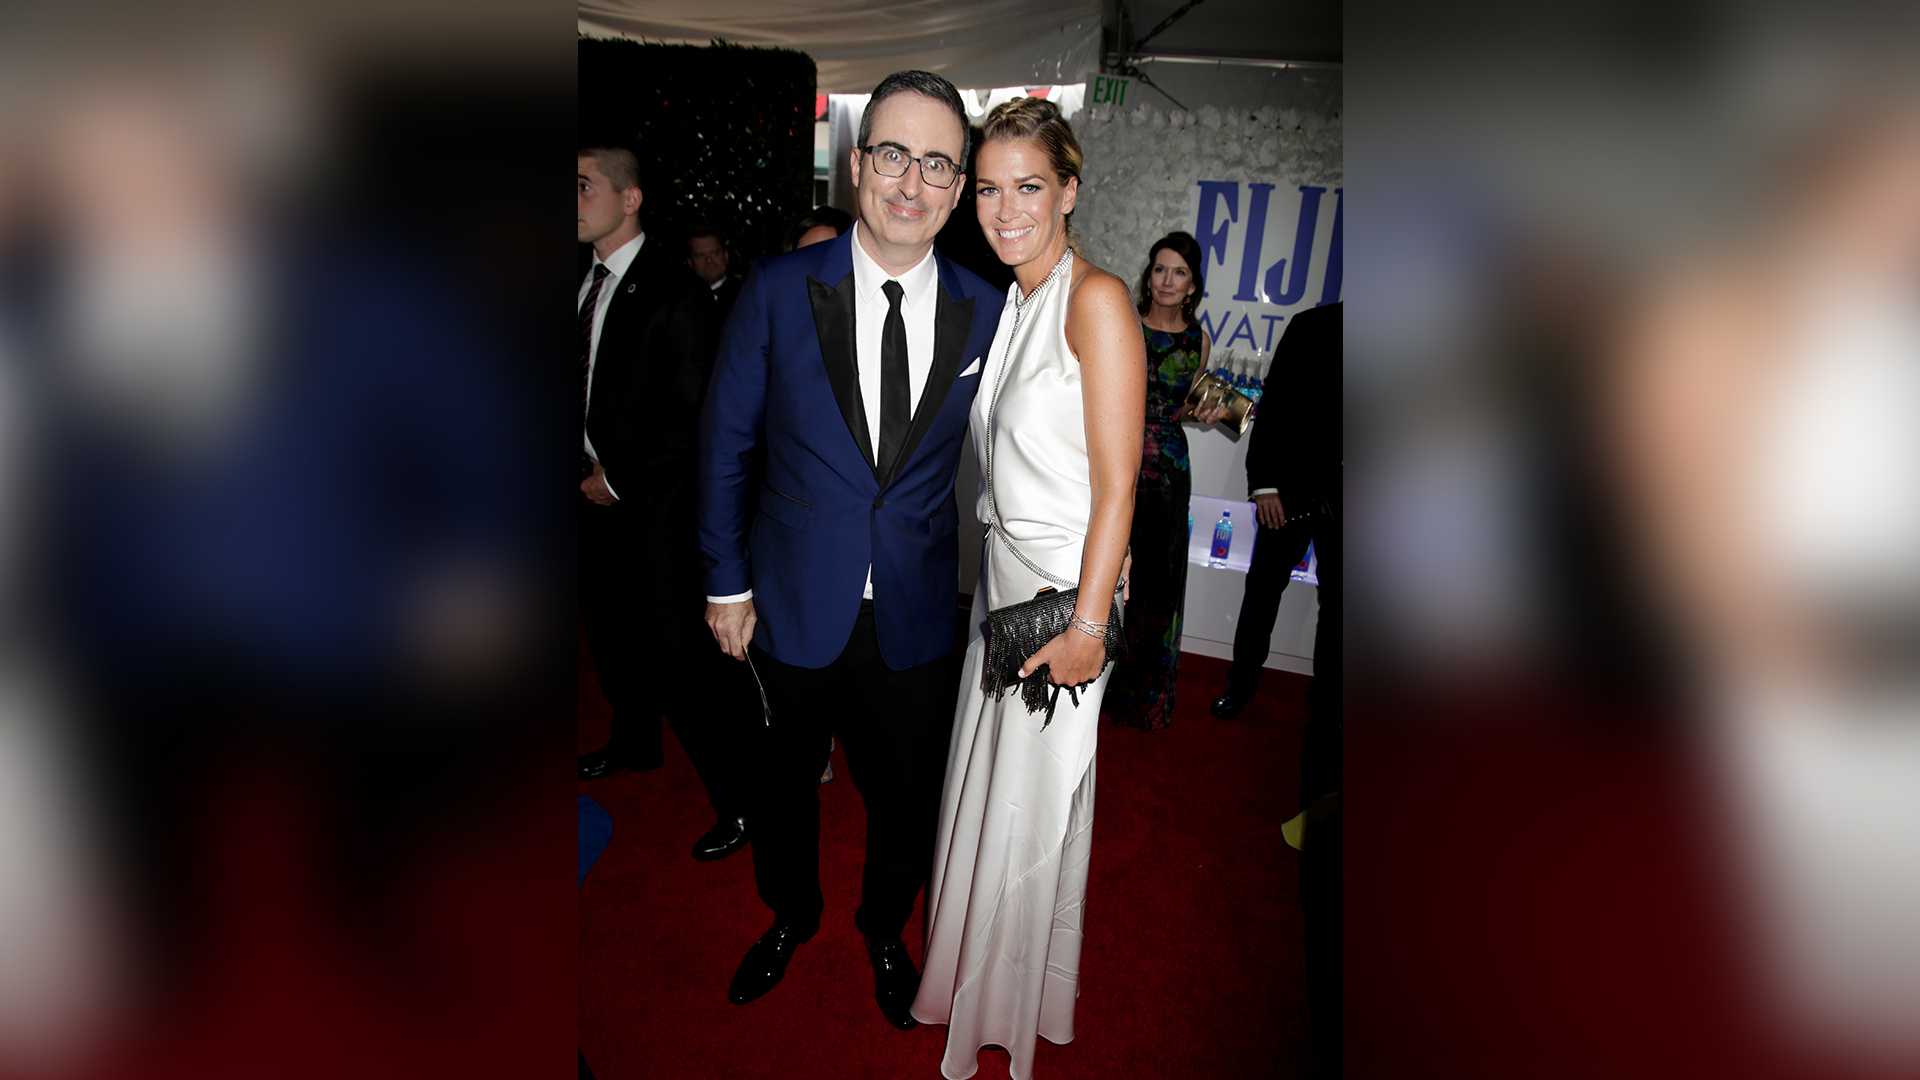 John Oliver from Last Week Tonight and Kate Norley